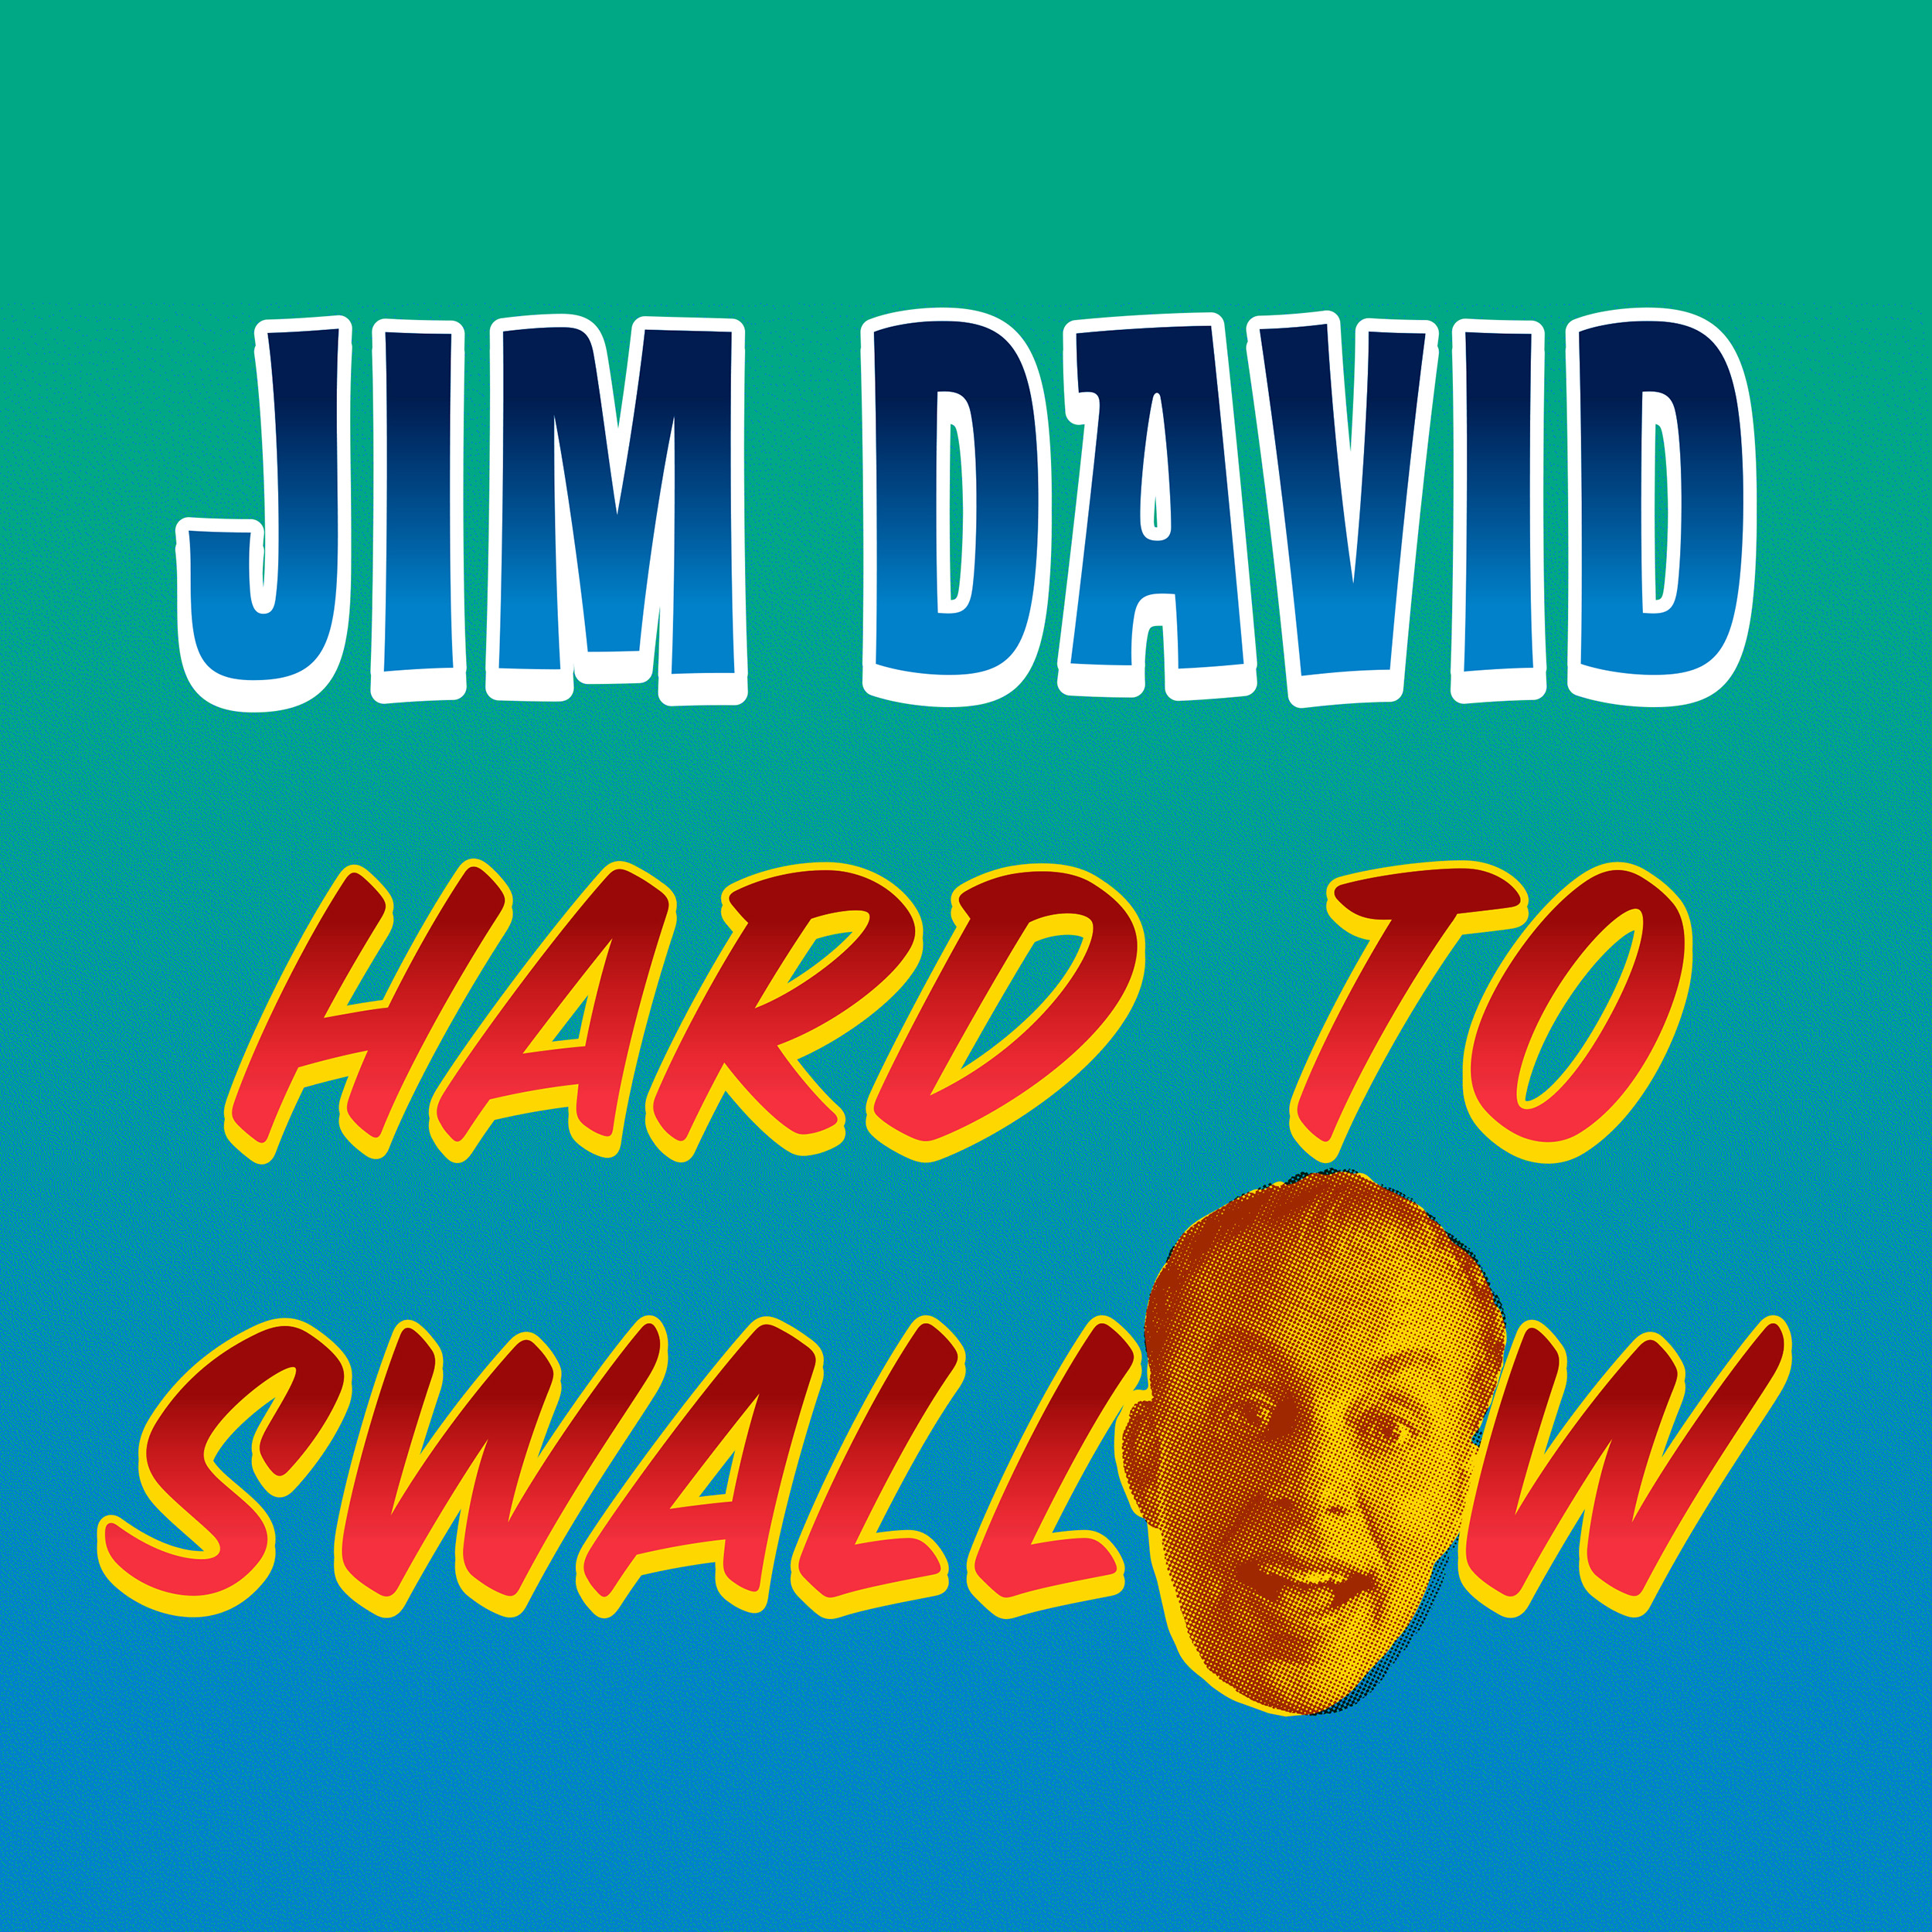 COMEDY NEWS: JIM DAVID'S 4TH RELEASE, HARD TO SWALLOW CONFIRMED FOR BLACK FRIDAY!